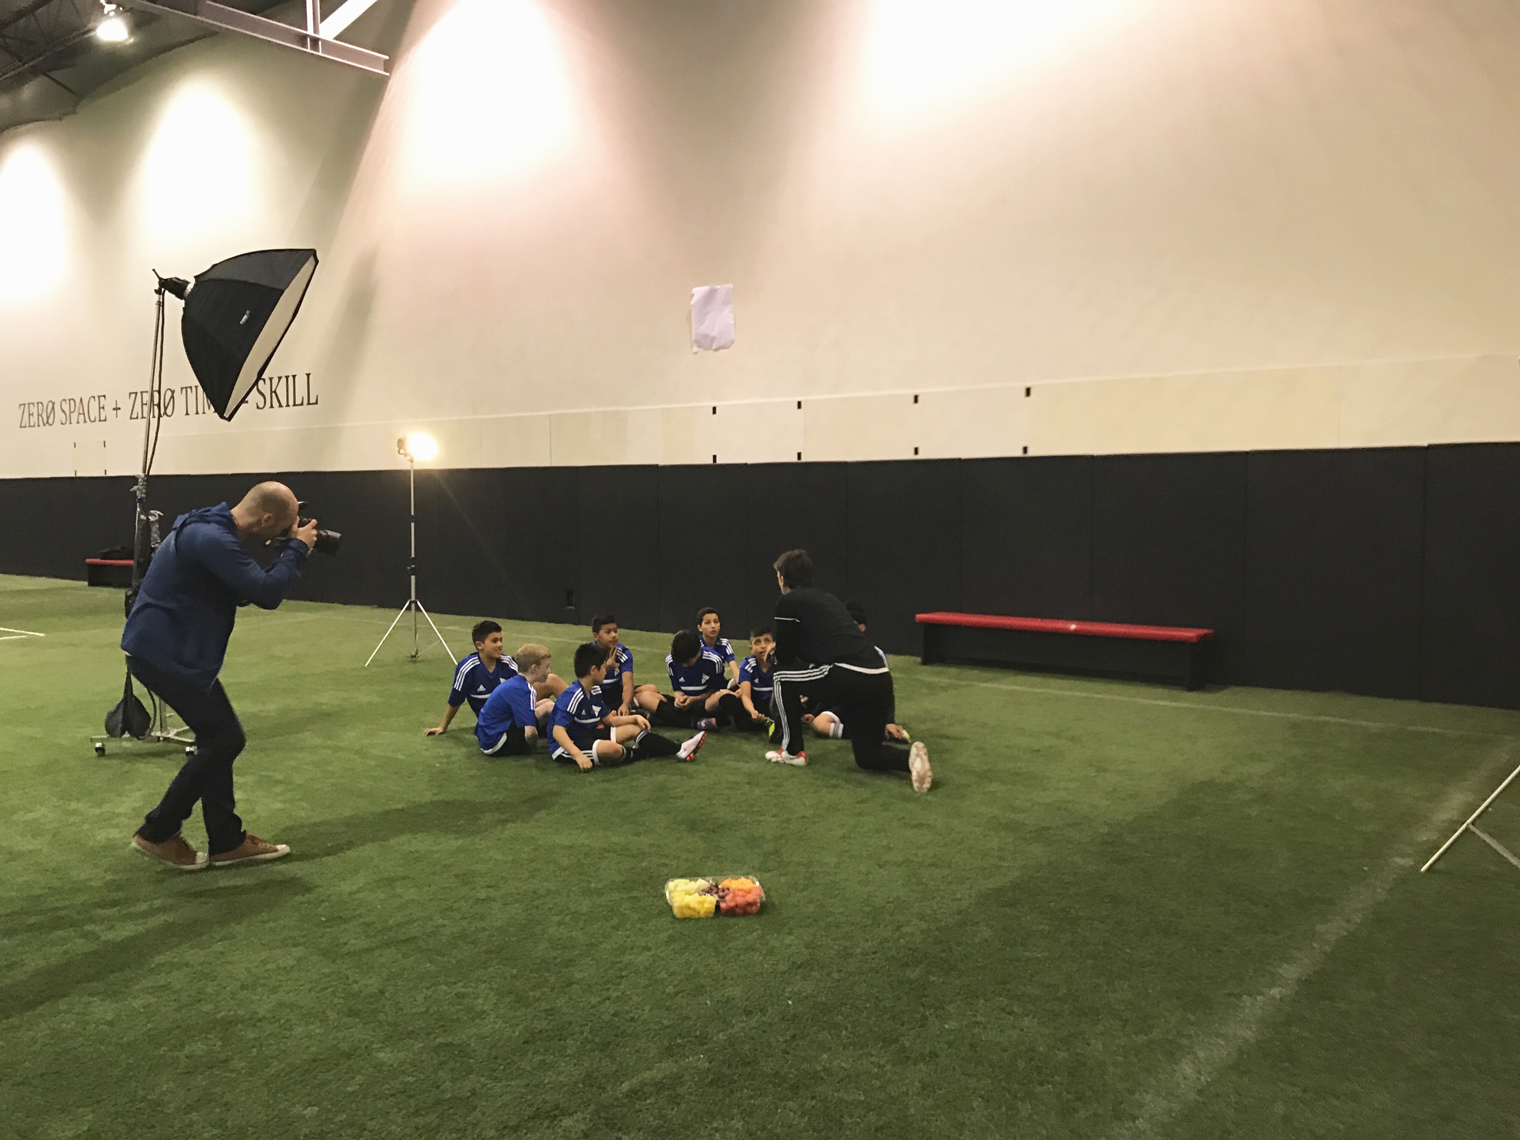 2017-Vancouver-BTS-Photographer-ErichSaide-Behindthescenes-Prosmart-Soccer-Group